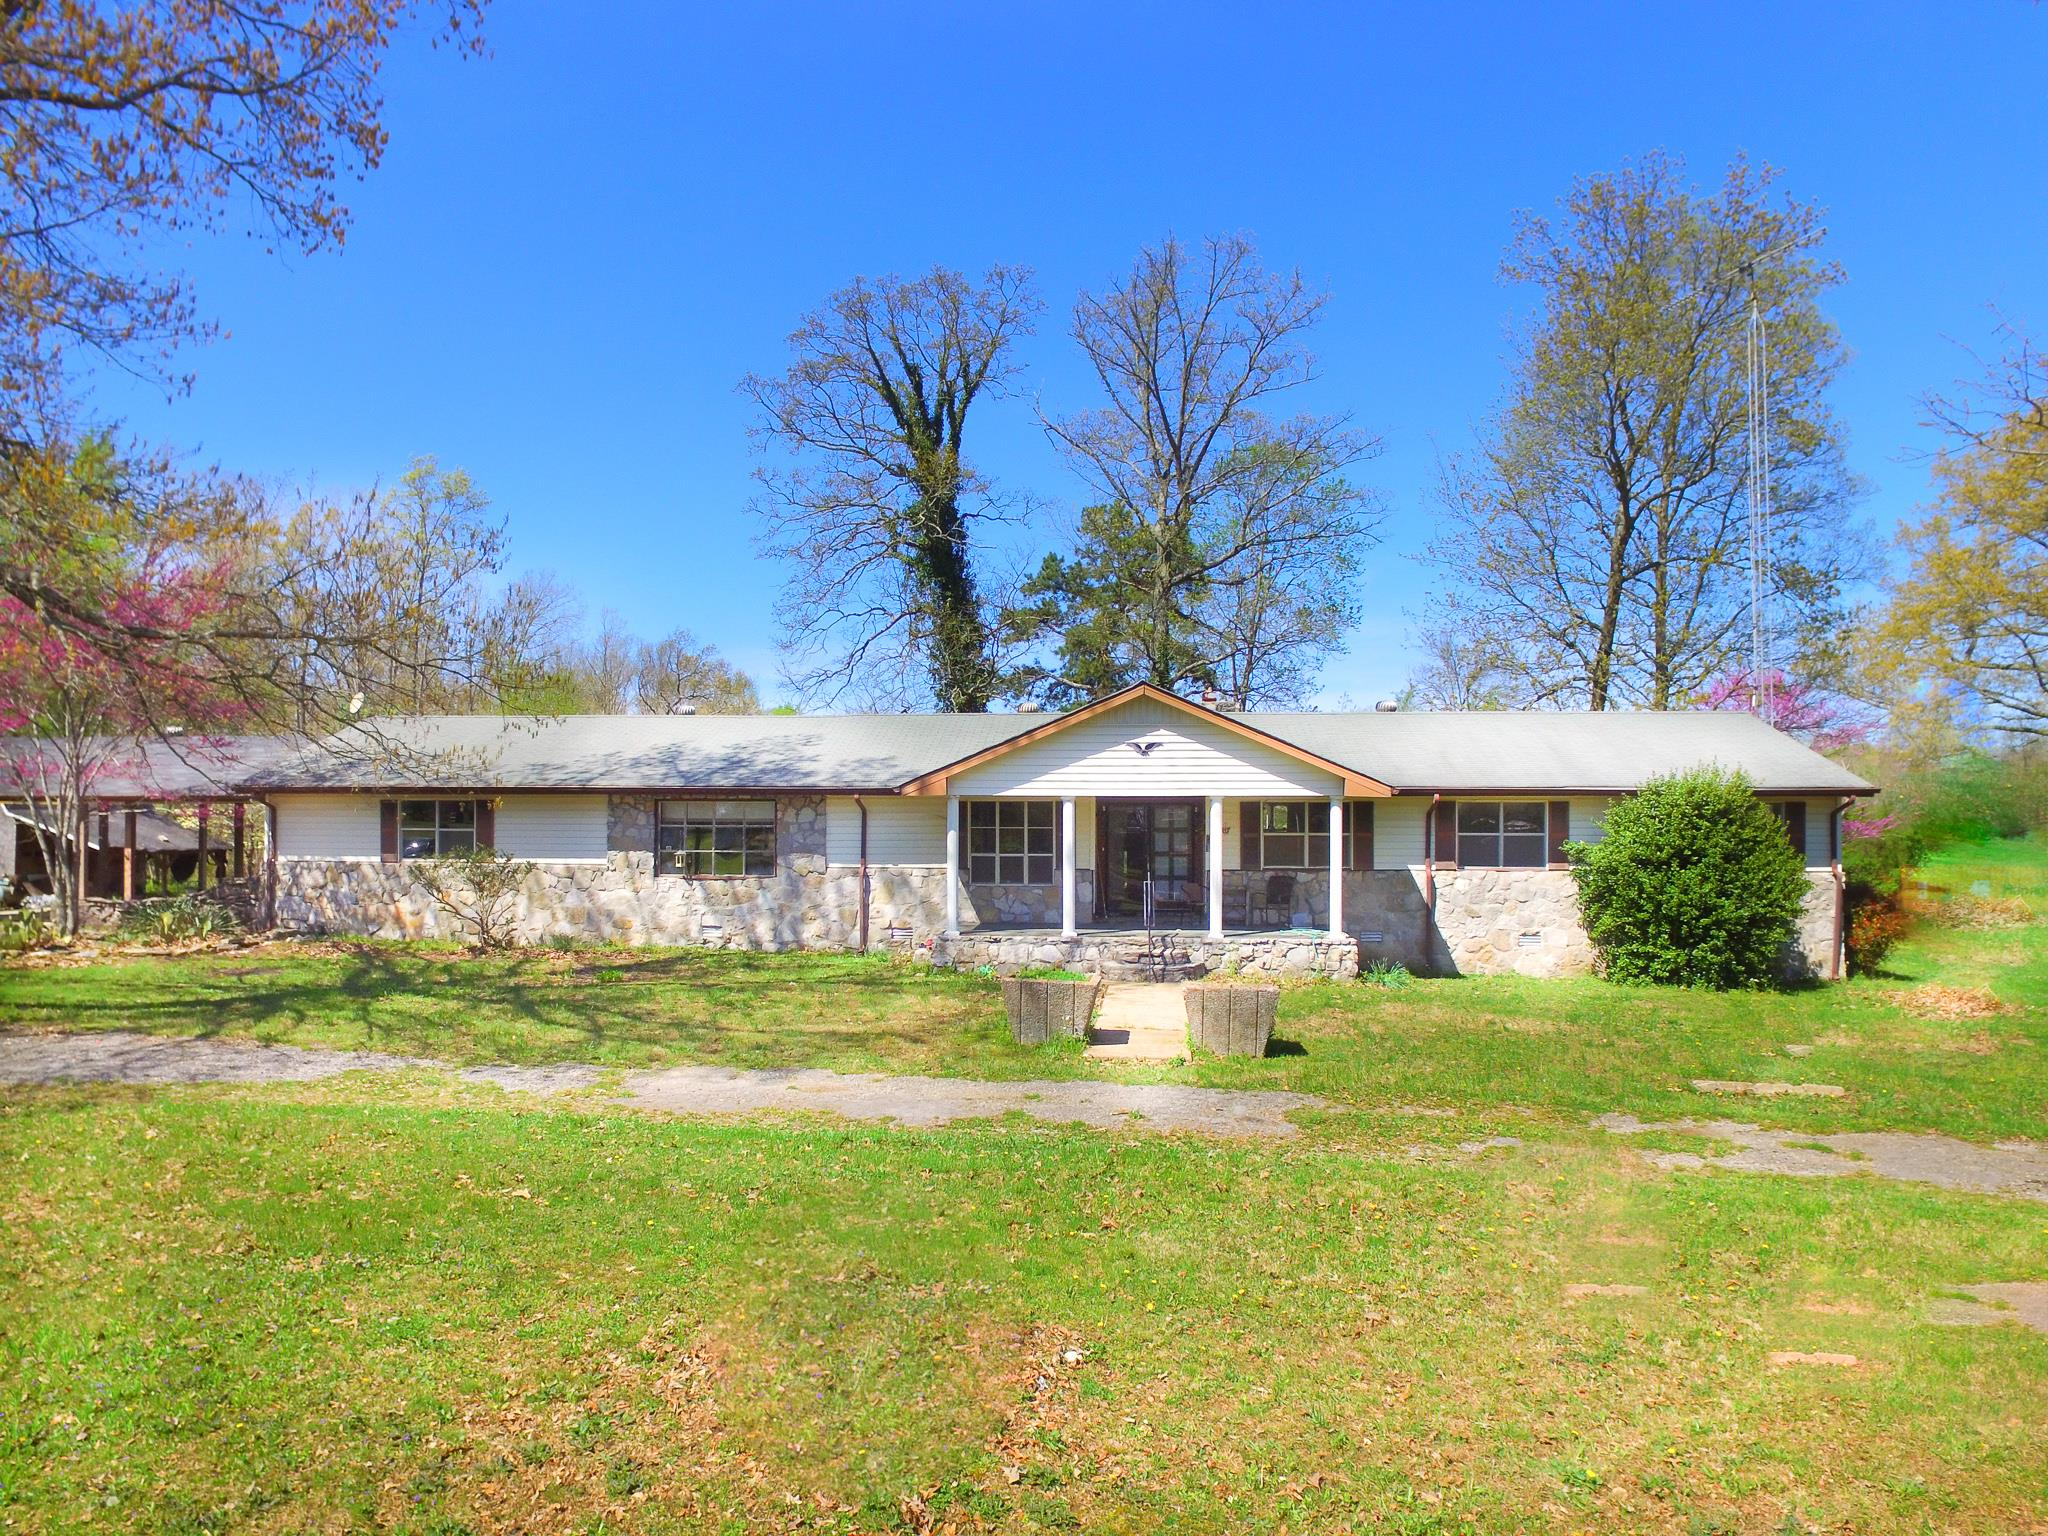 401 C Anderson Rd, Manchester, Tennessee